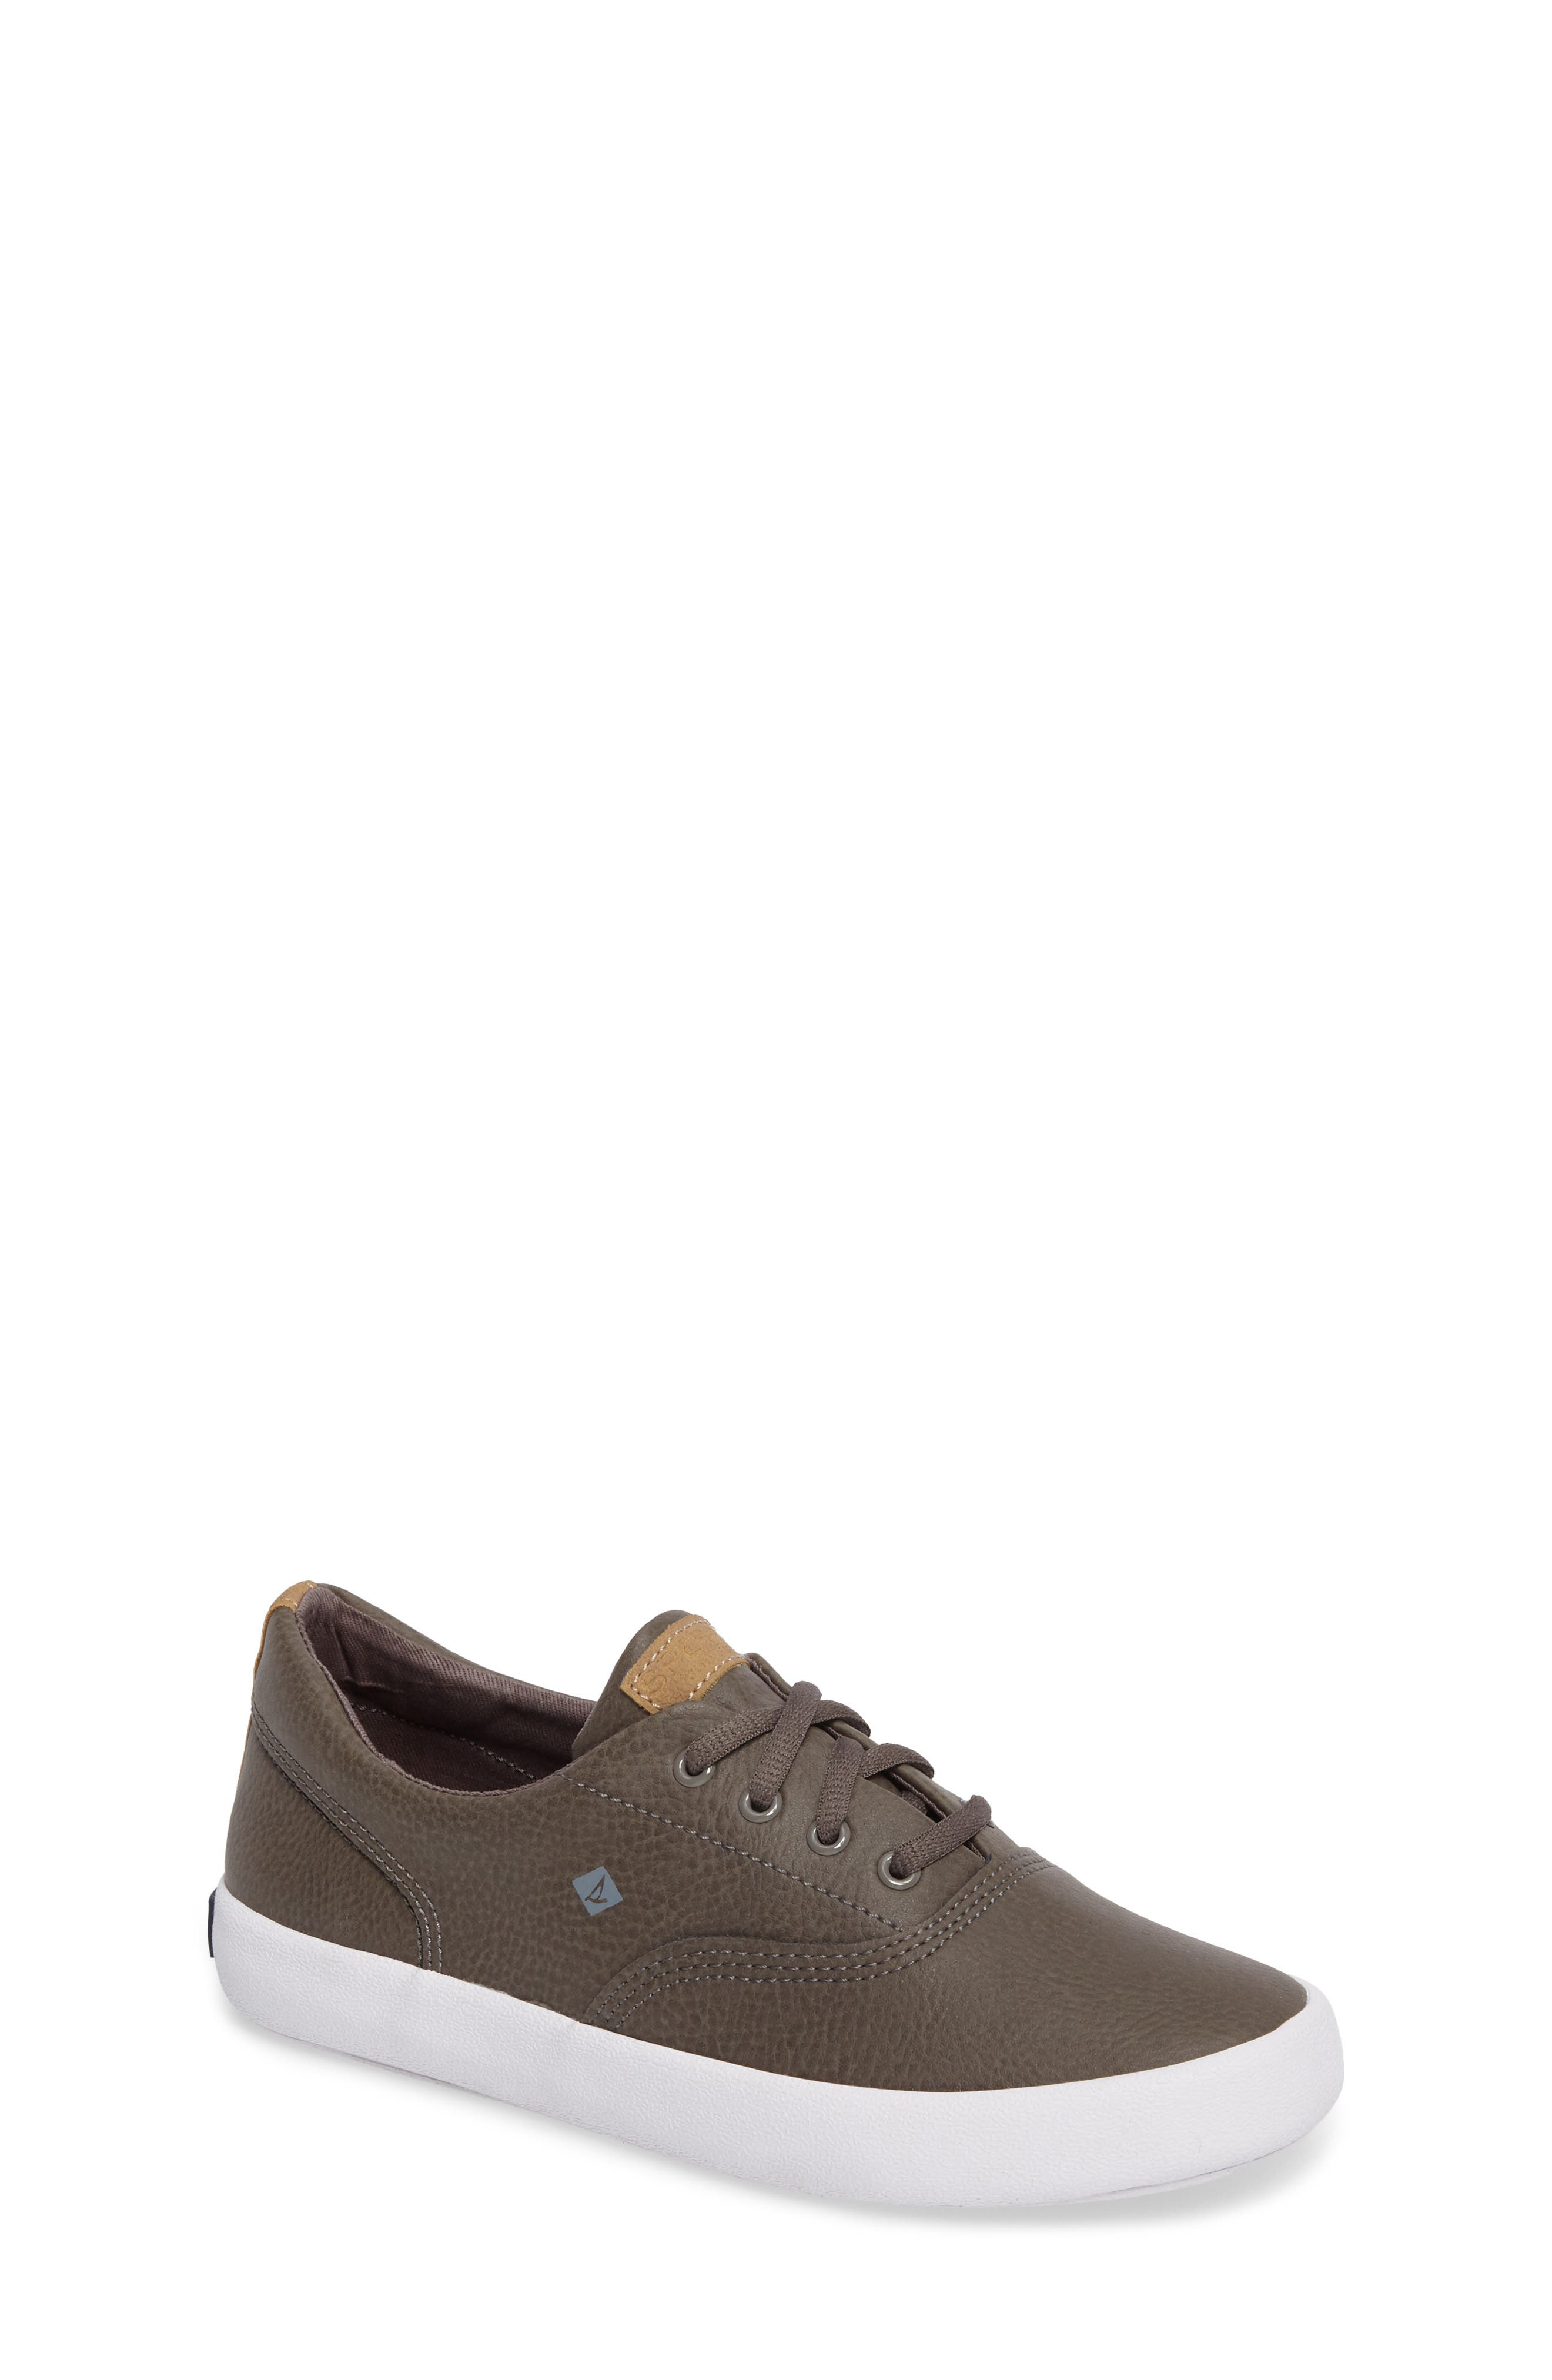 Alternate Image 1 Selected - Sperry Kids Wahoo Sneaker (Little Kid and Big Kid)